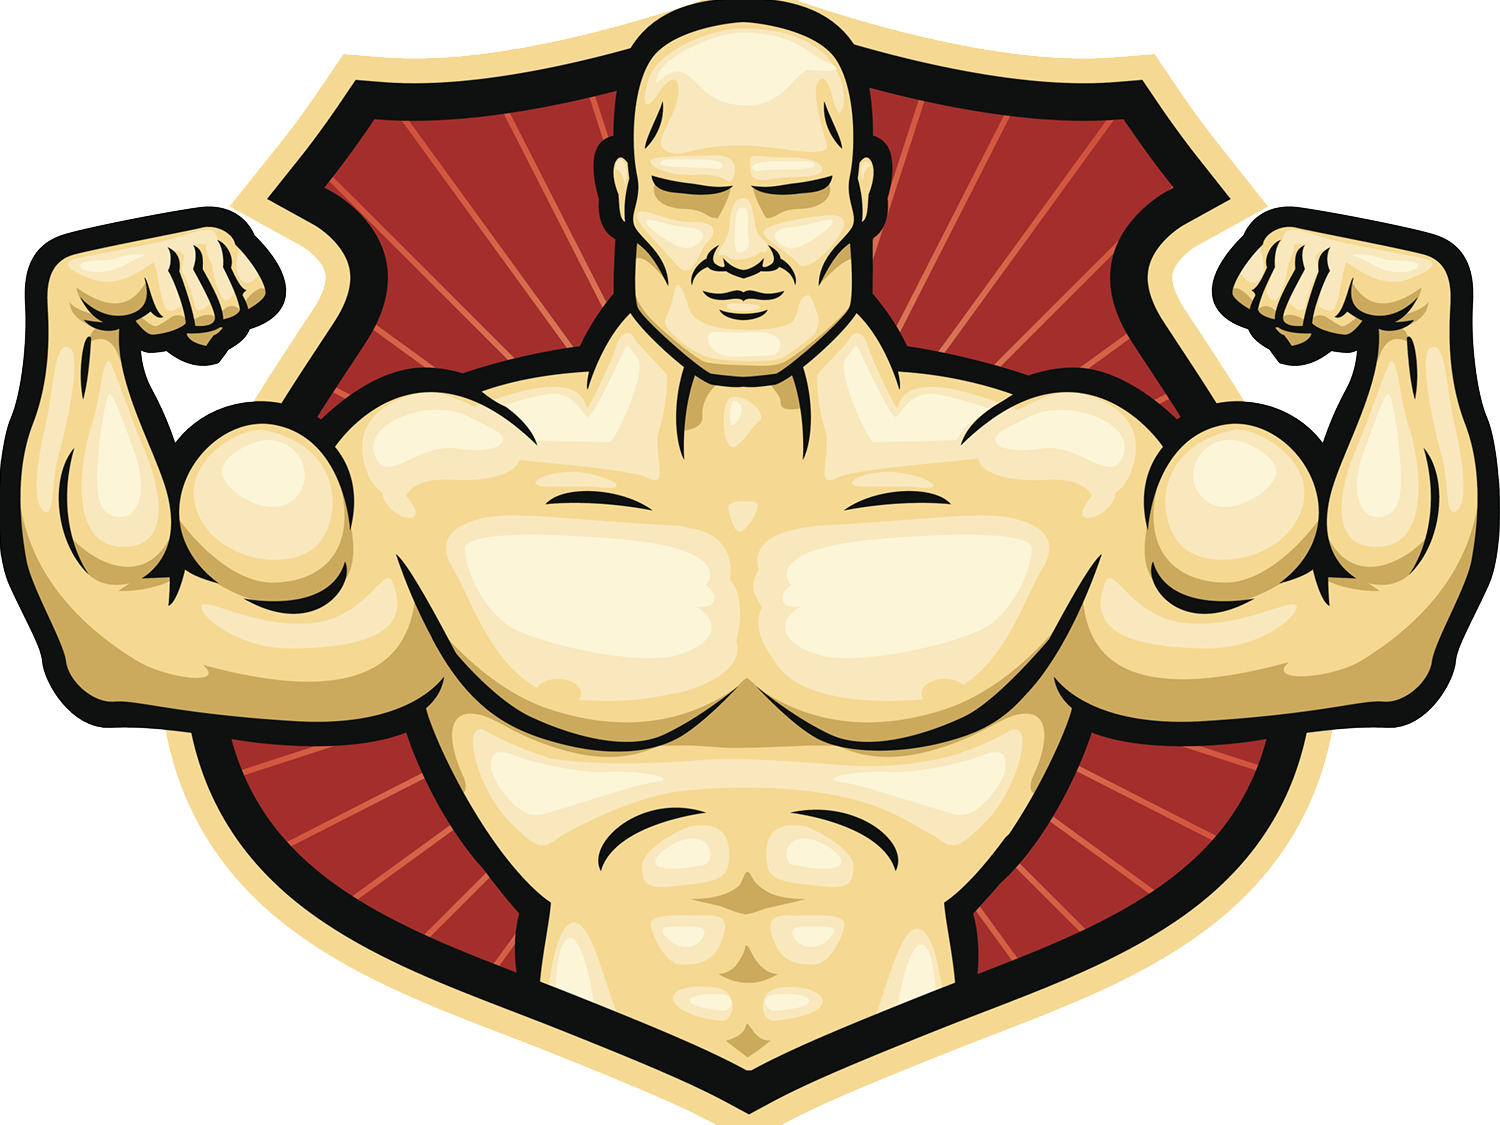 Lucha libre professional wrestling. Wrestlers clipart muscular